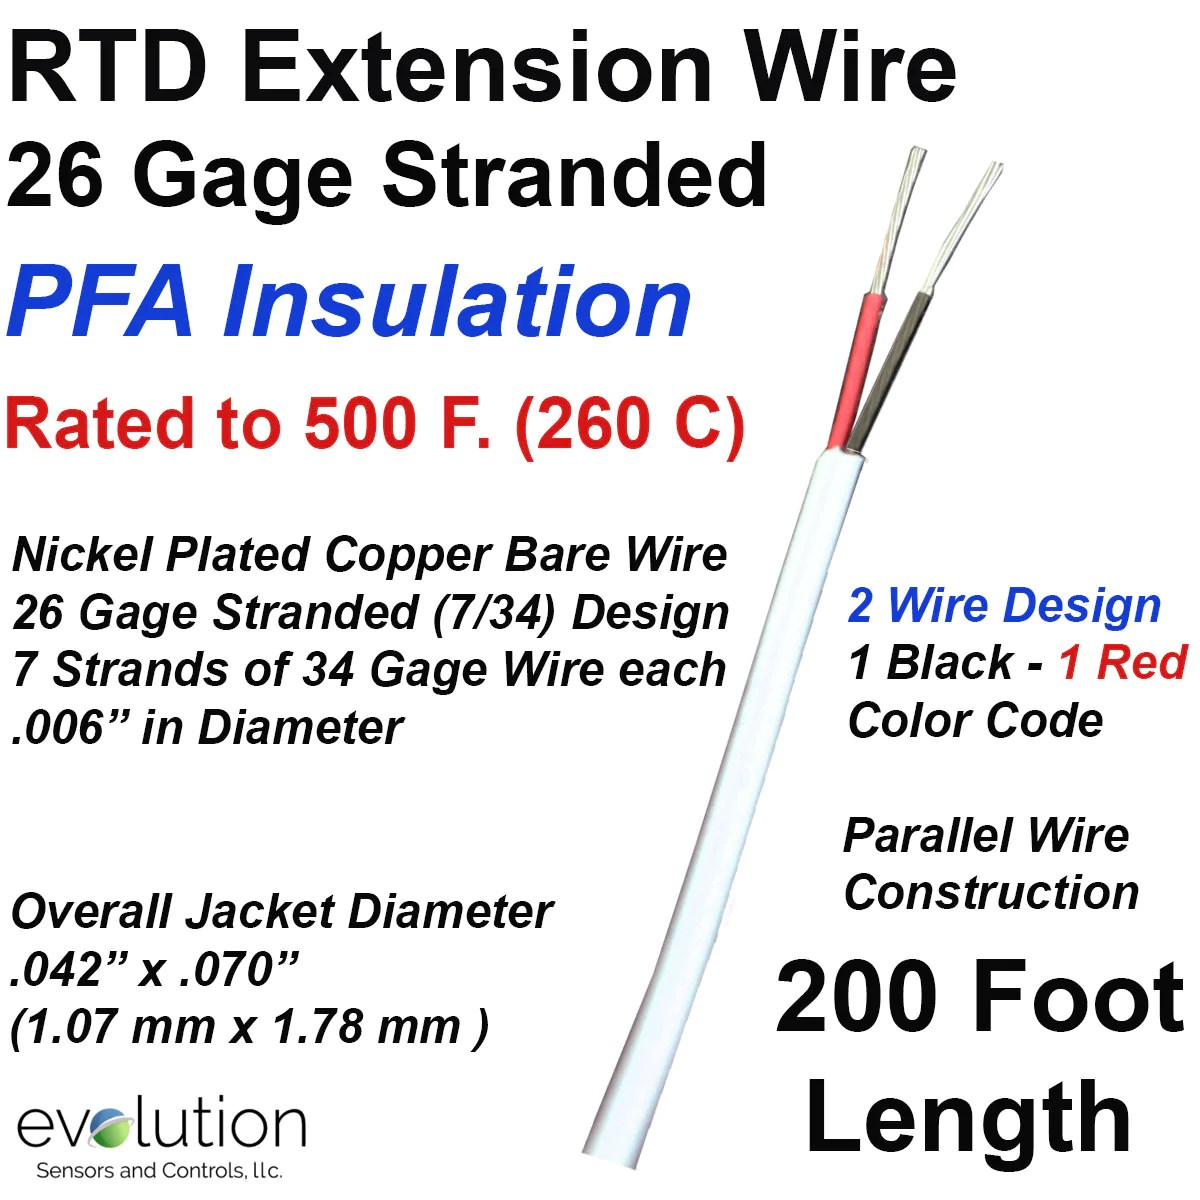 hight resolution of rtd extension wire 200 foot length 26 gage stranded 2 wire design rtd wiring color code